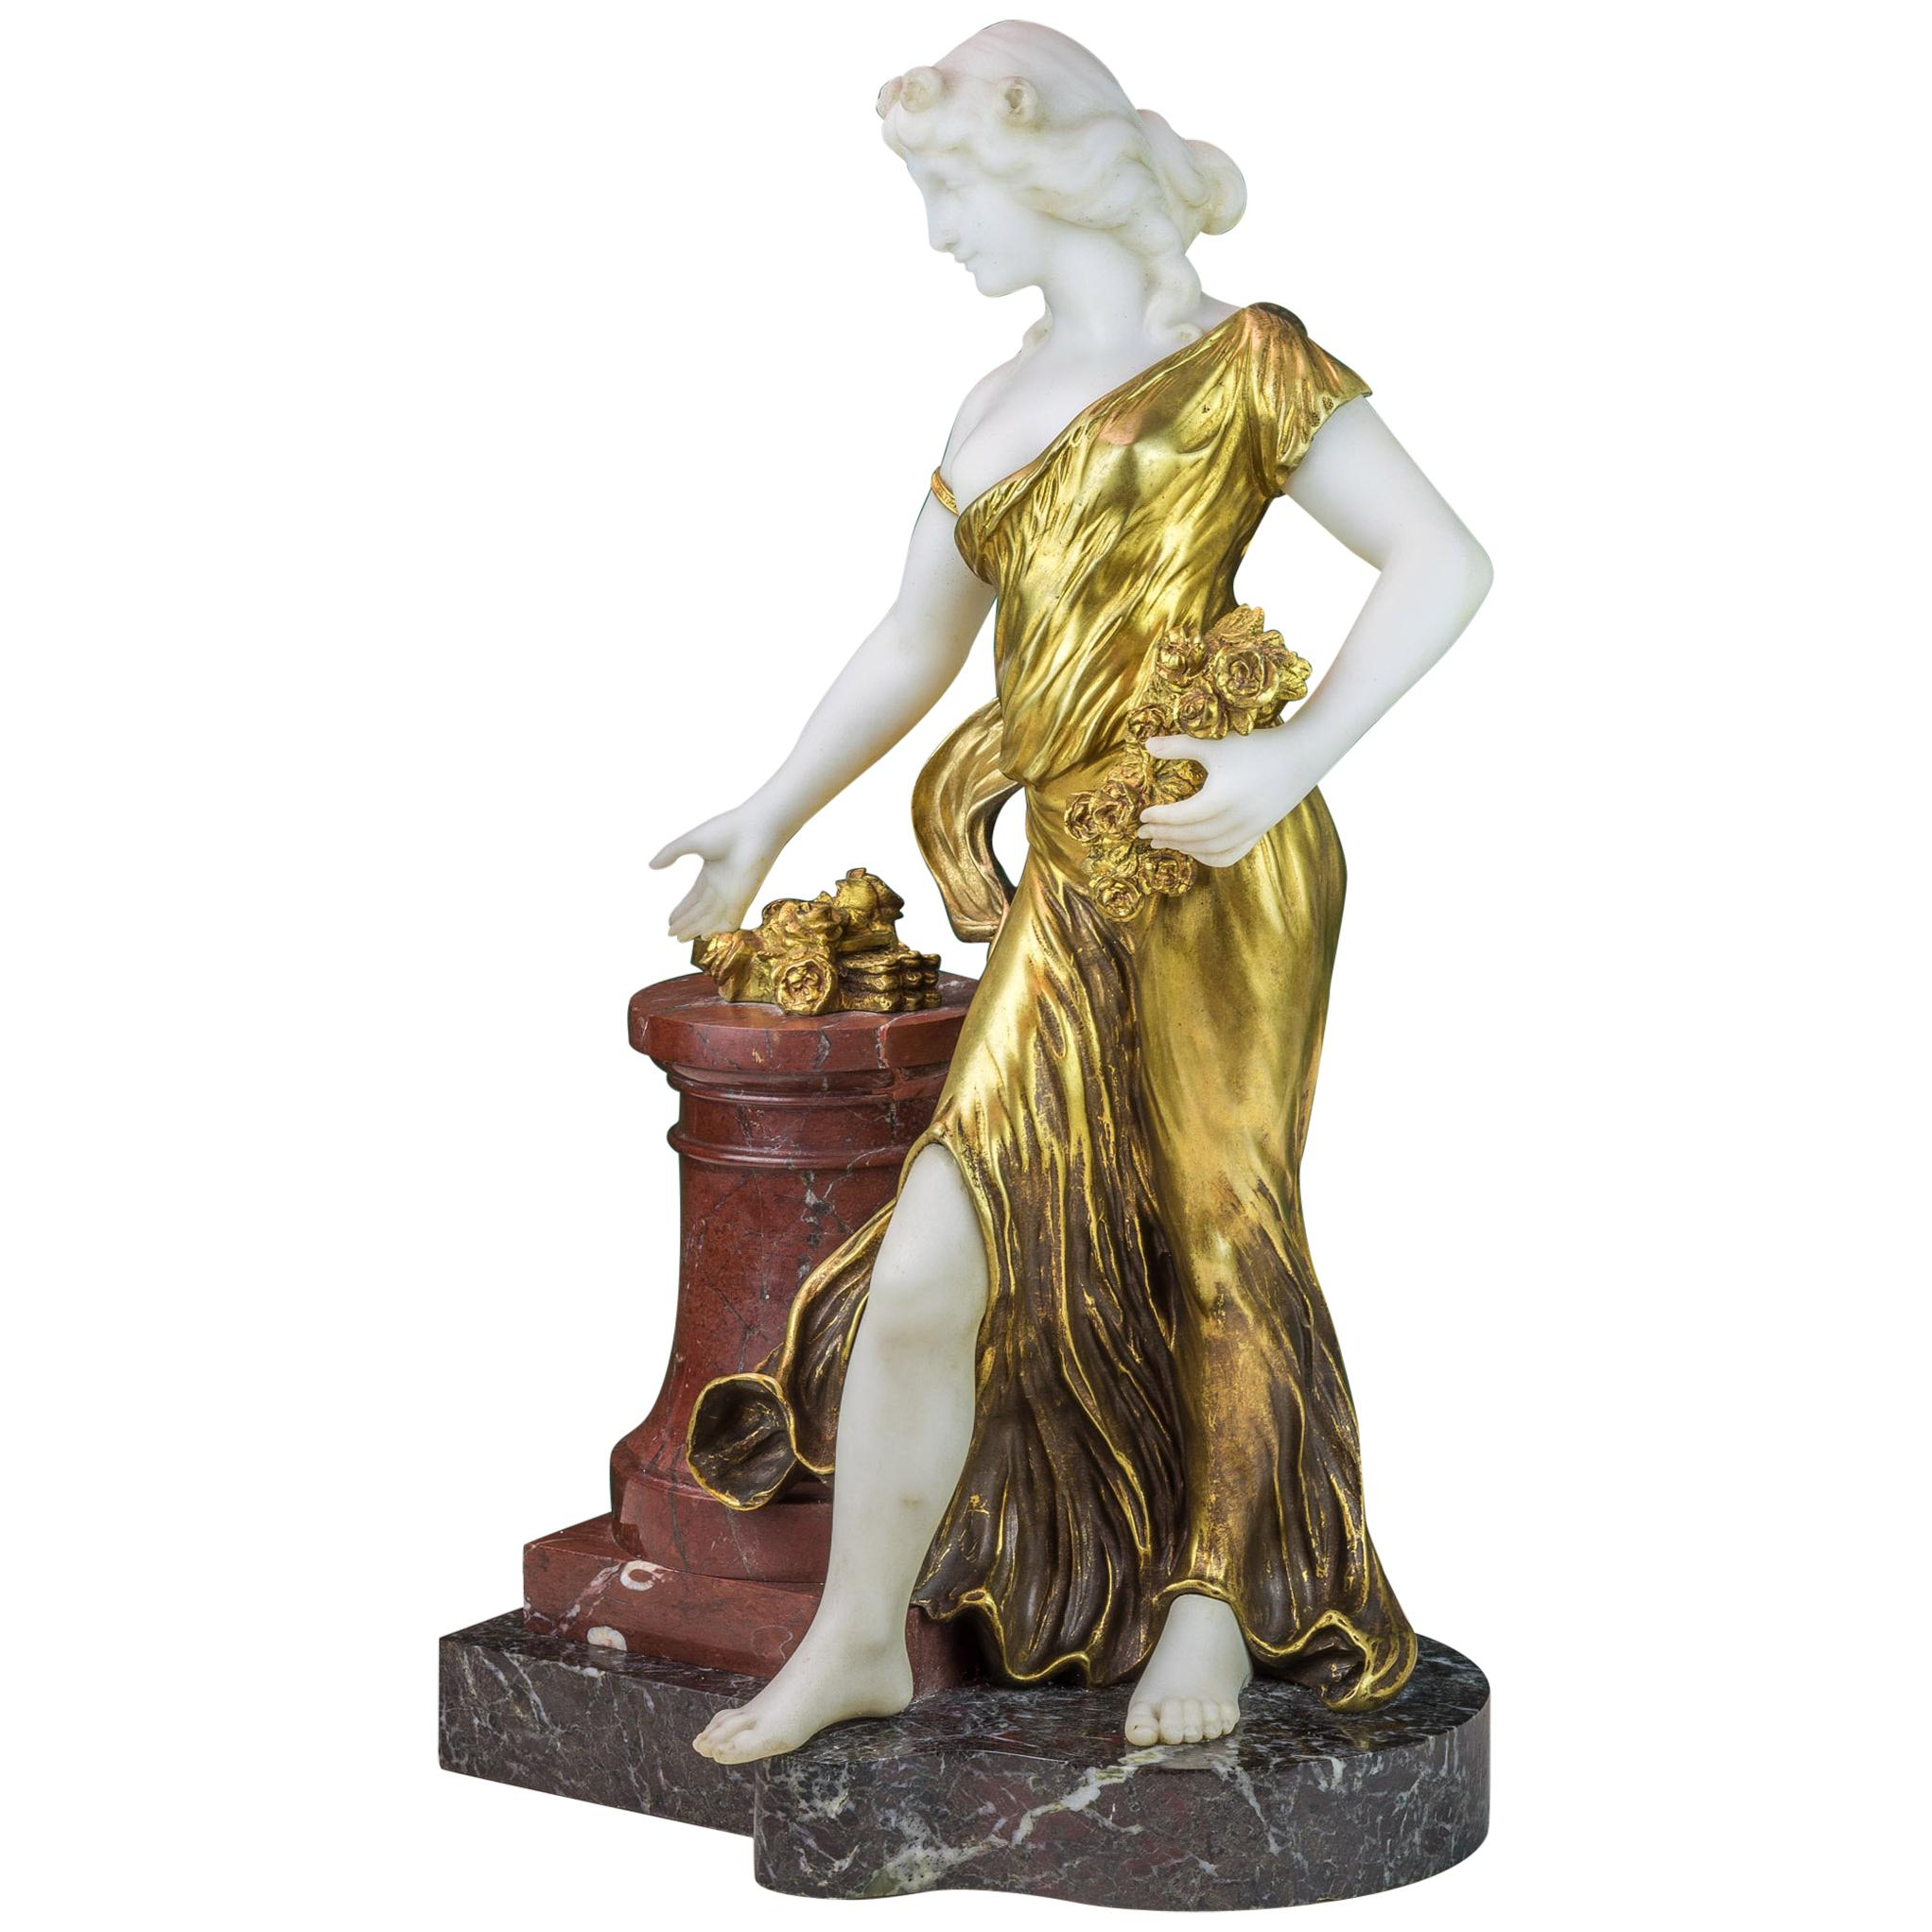 Bronze and Marble Figure of a Woman with Flowers by H. Fugère